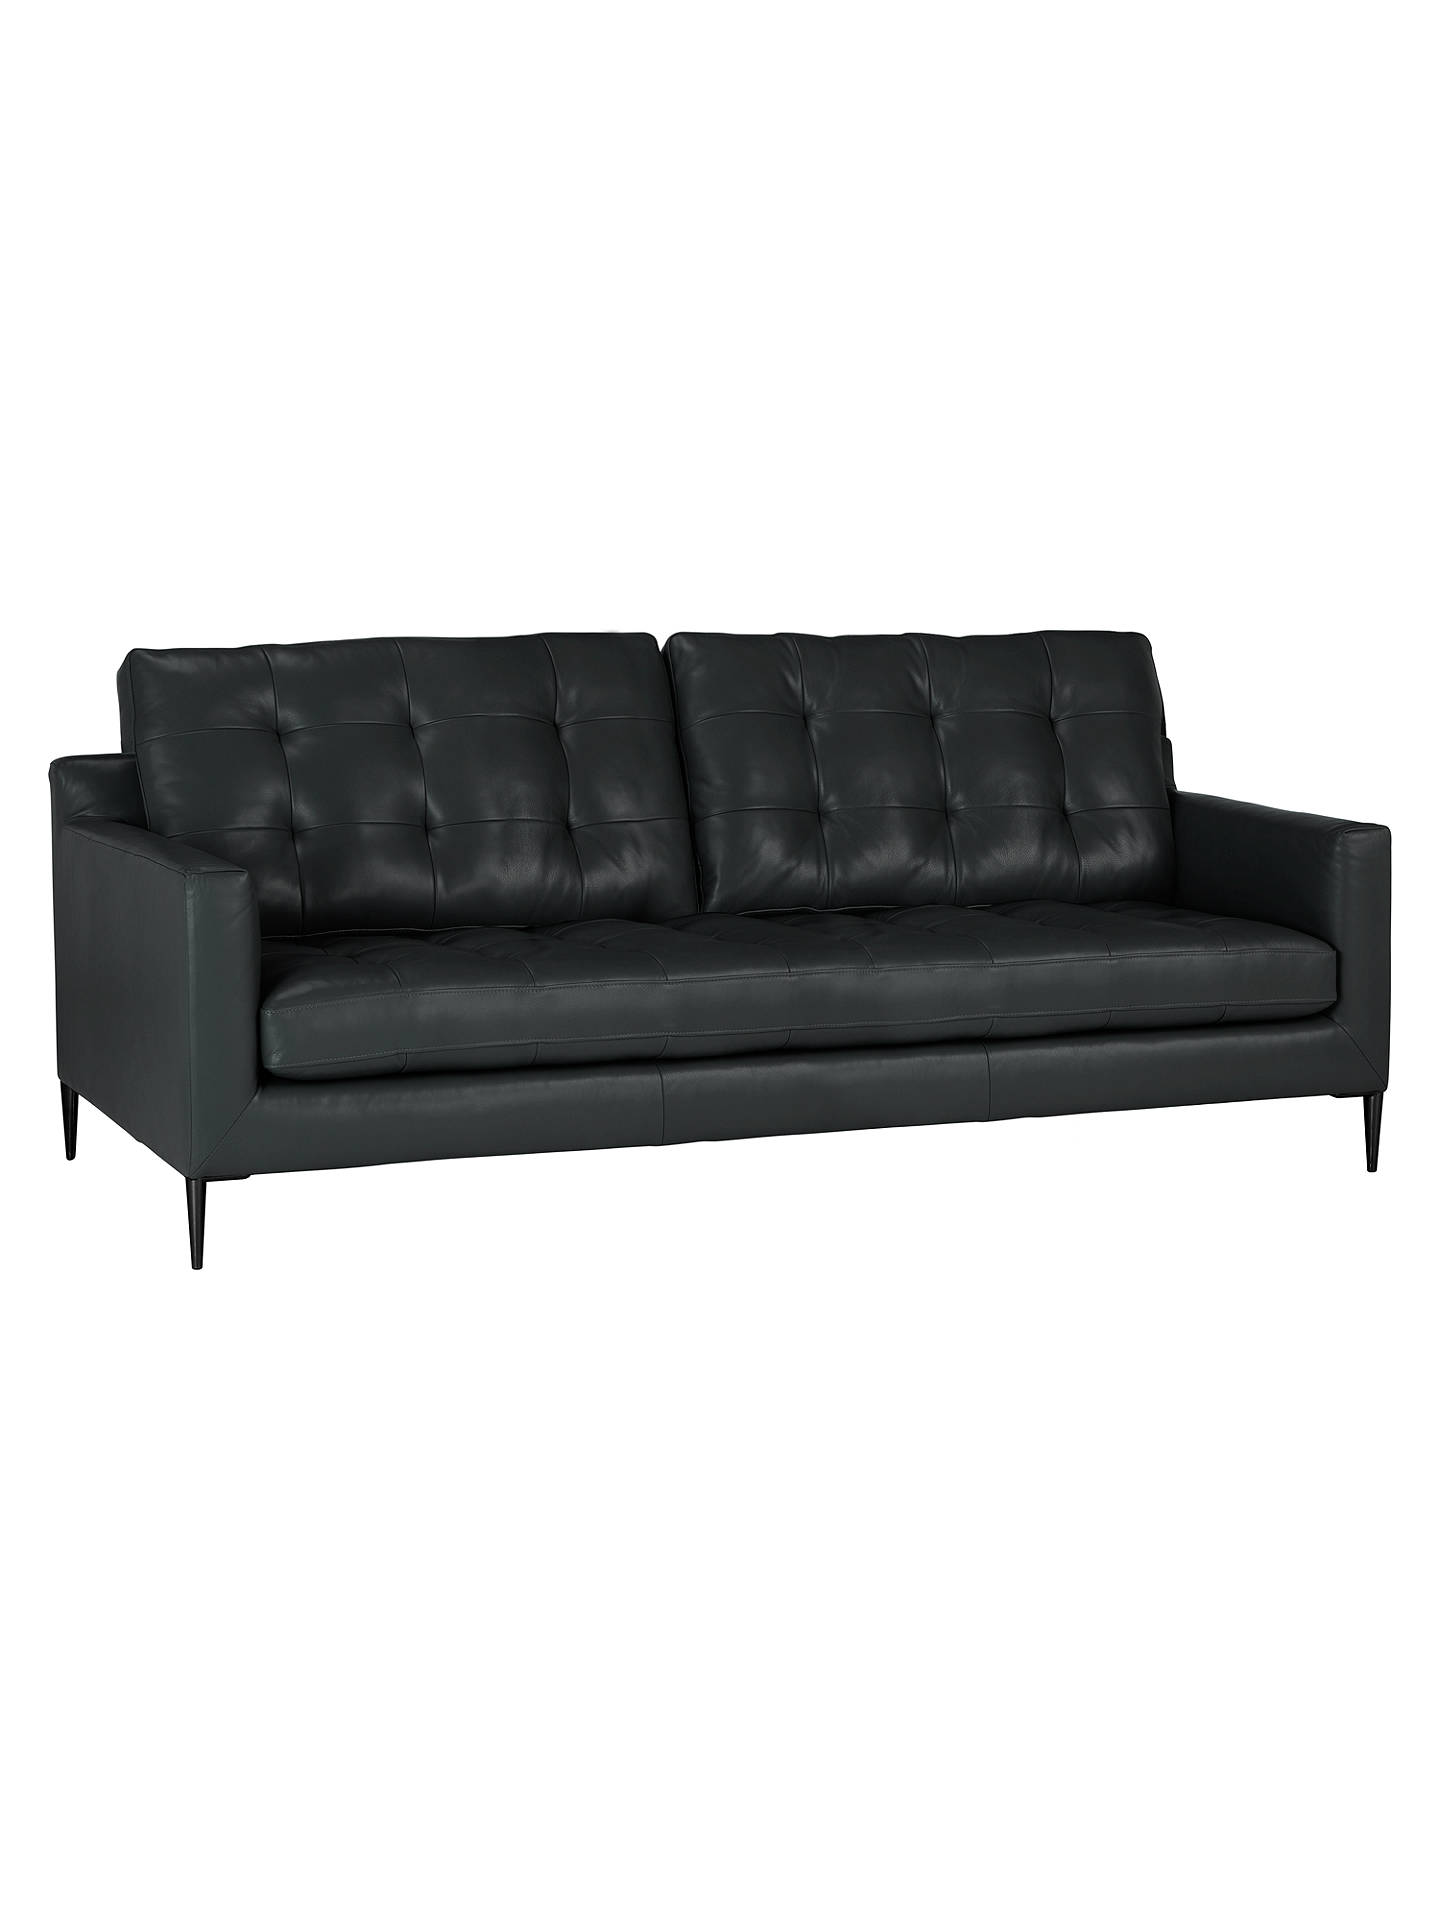 Buy John Lewis & Partners Draper Large 3 Seater Leather Sofa, Metal Leg, Nature Black Online at johnlewis.com